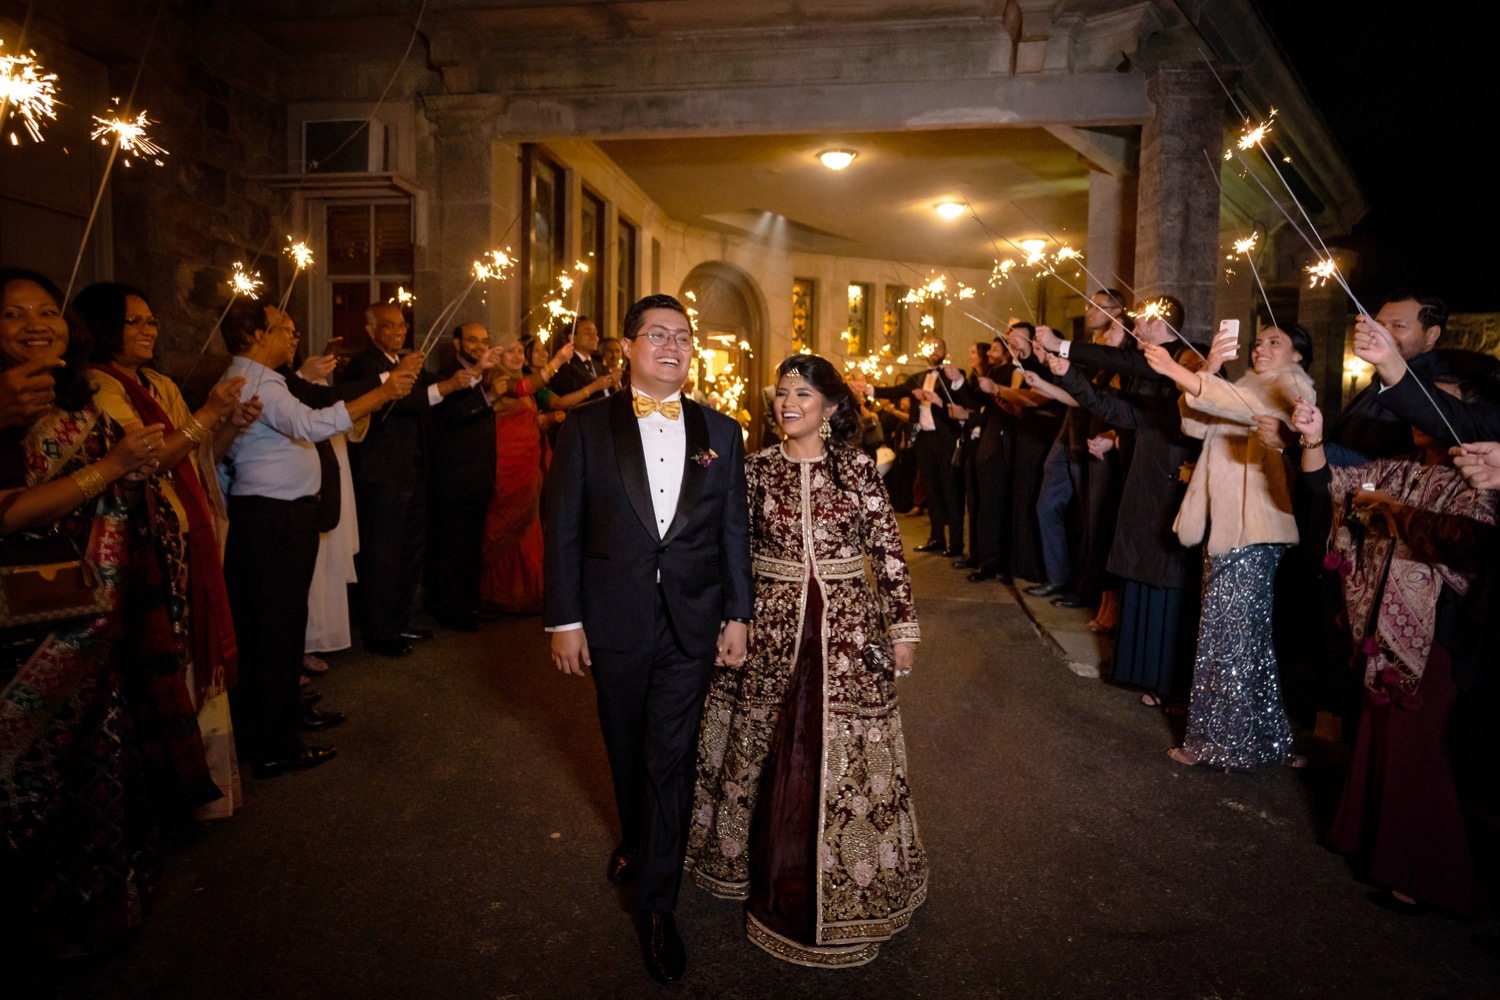 A newly wedded couple exiting their wedding venue end of the night at the Tappan Hill Mansion.